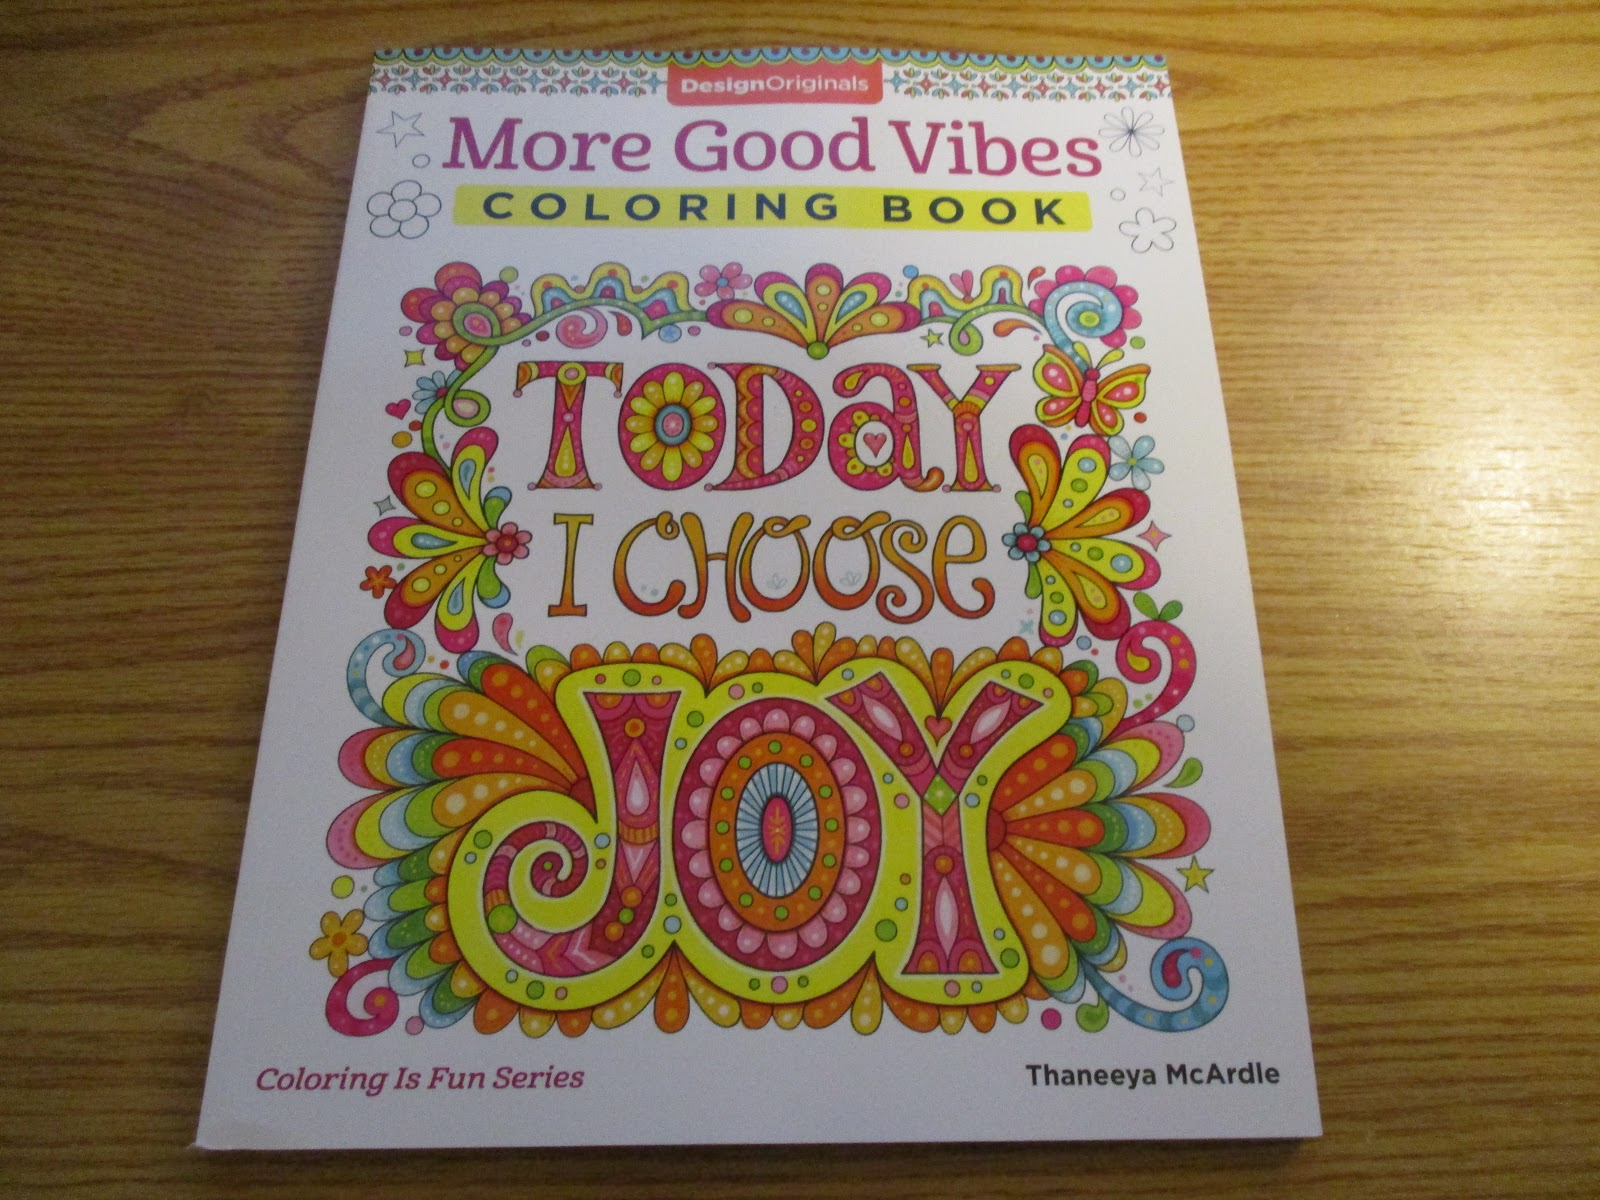 More Good Vibes Coloring Book By Thaneeya McArdle